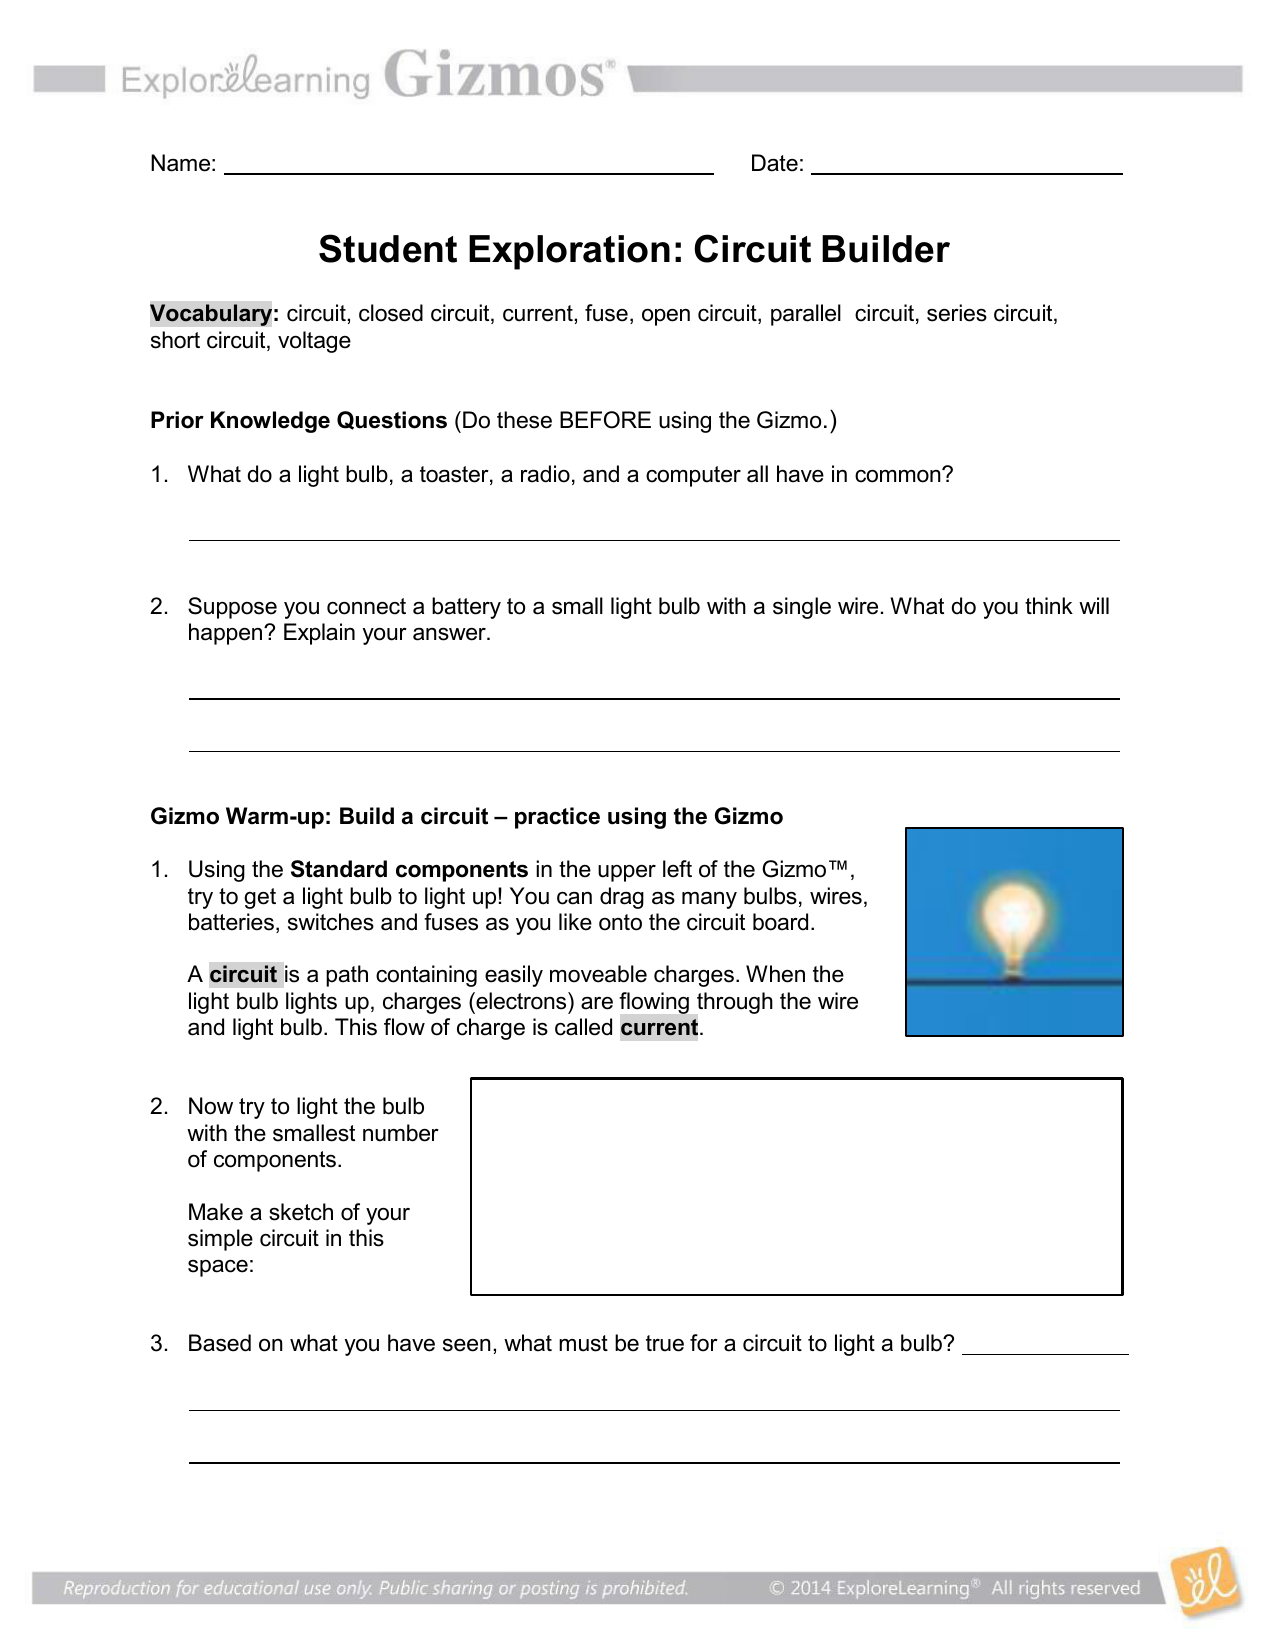 Student Exploration Circuit Builder Electric With Switch Battery And Lamp A Series